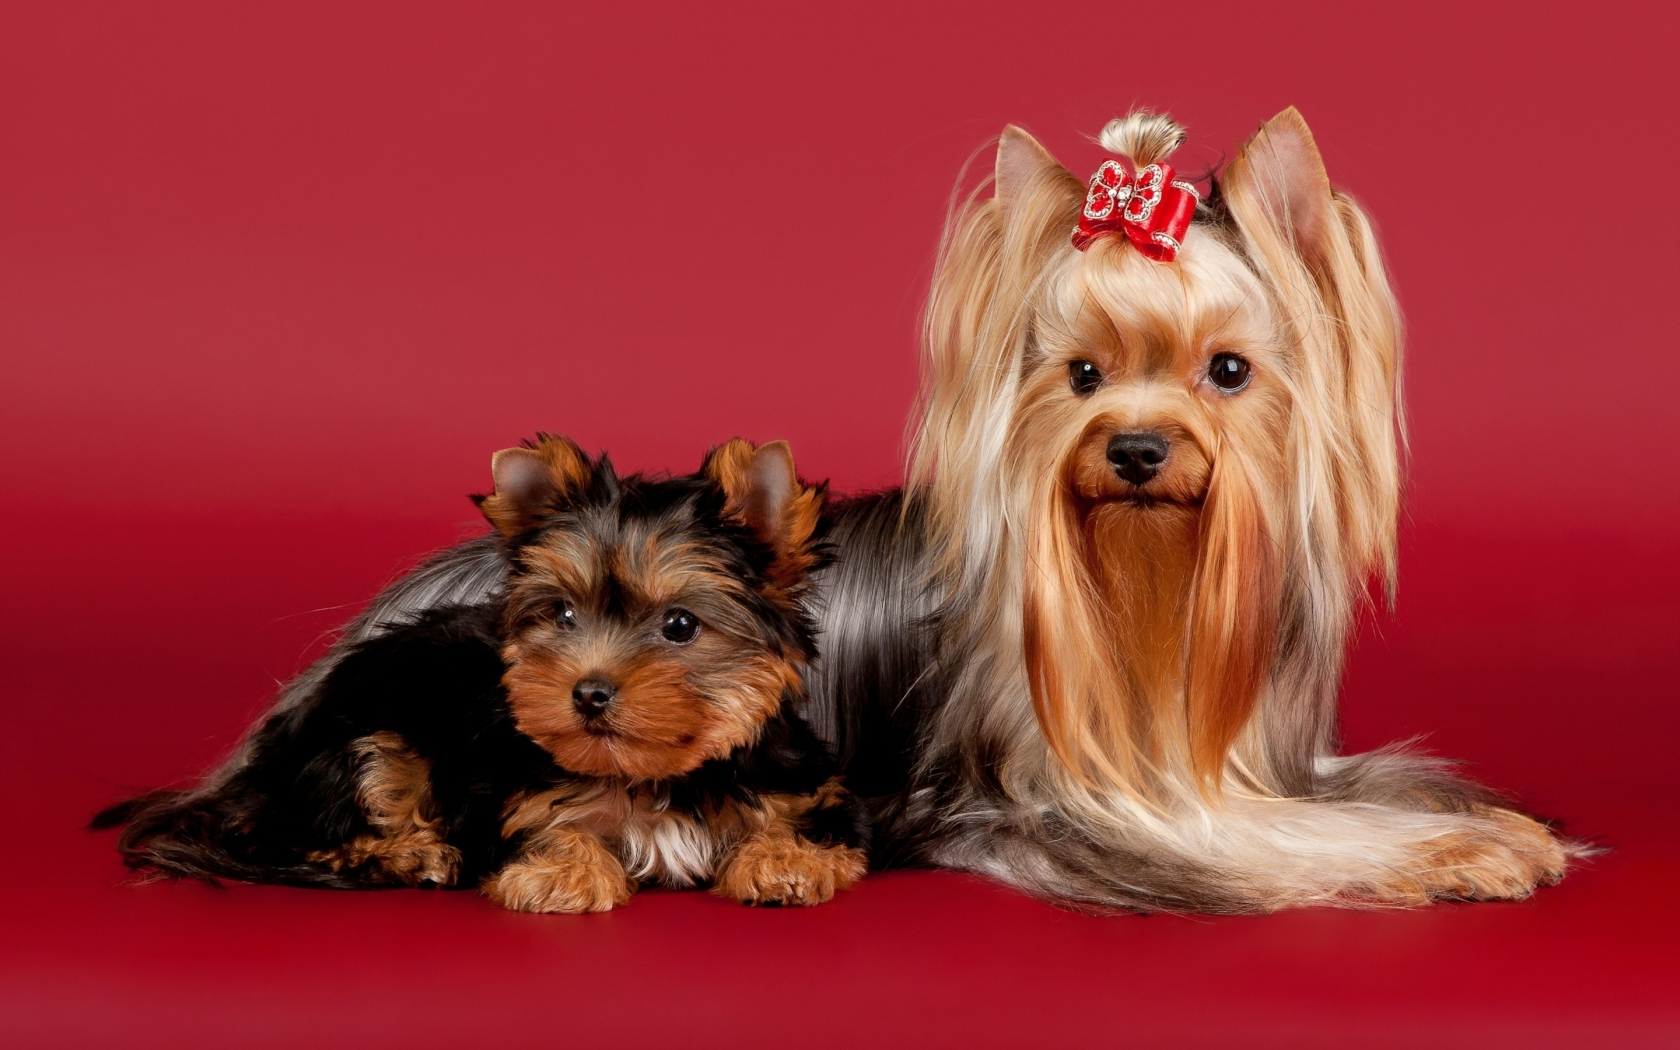 2 Cute Dogs for 1680 x 1050 widescreen resolution